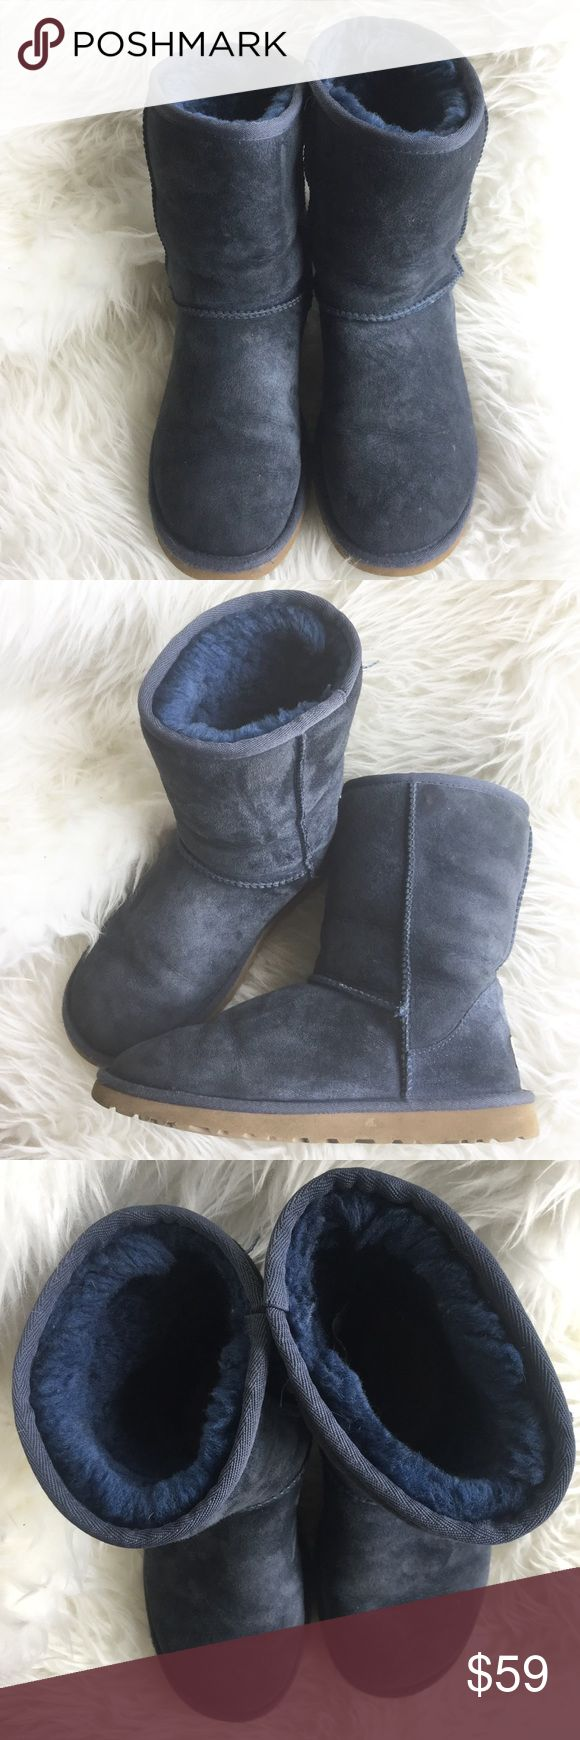 Navy Blue Uggs *Authentic. In excellent used condition. They smell clean (no odor or anything). See wear in photos. Fits like a 6.5/7 says size 6. UGG Shoes Winter & Rain Boots